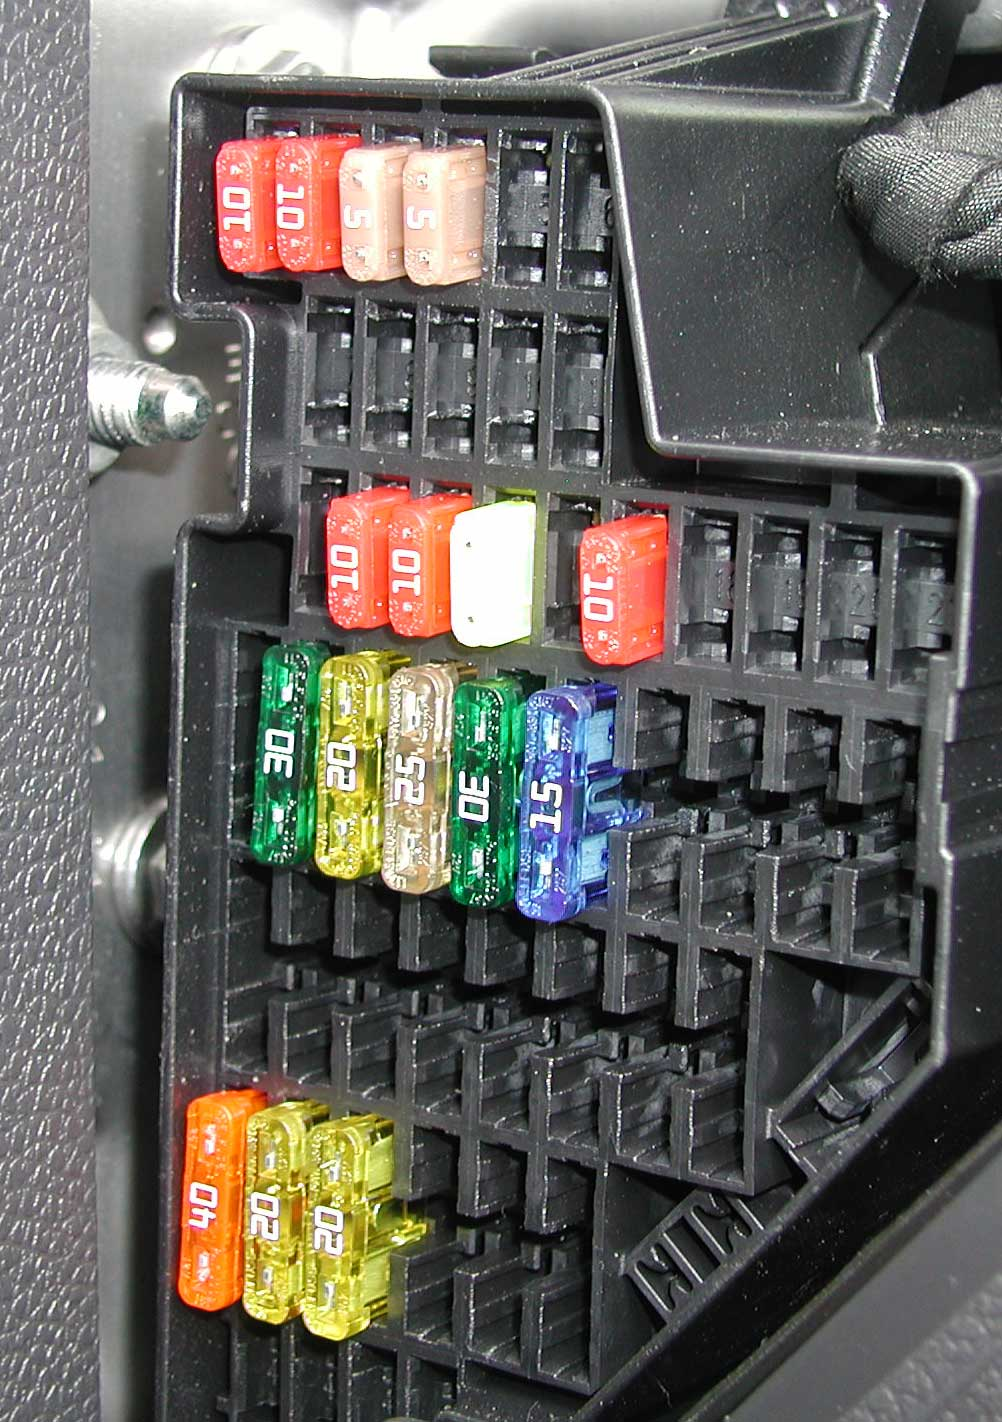 fuses2 2011 golf tdi fuse box (picture please!!!) tdiclub forums 2001 vw golf fuse box diagram at crackthecode.co